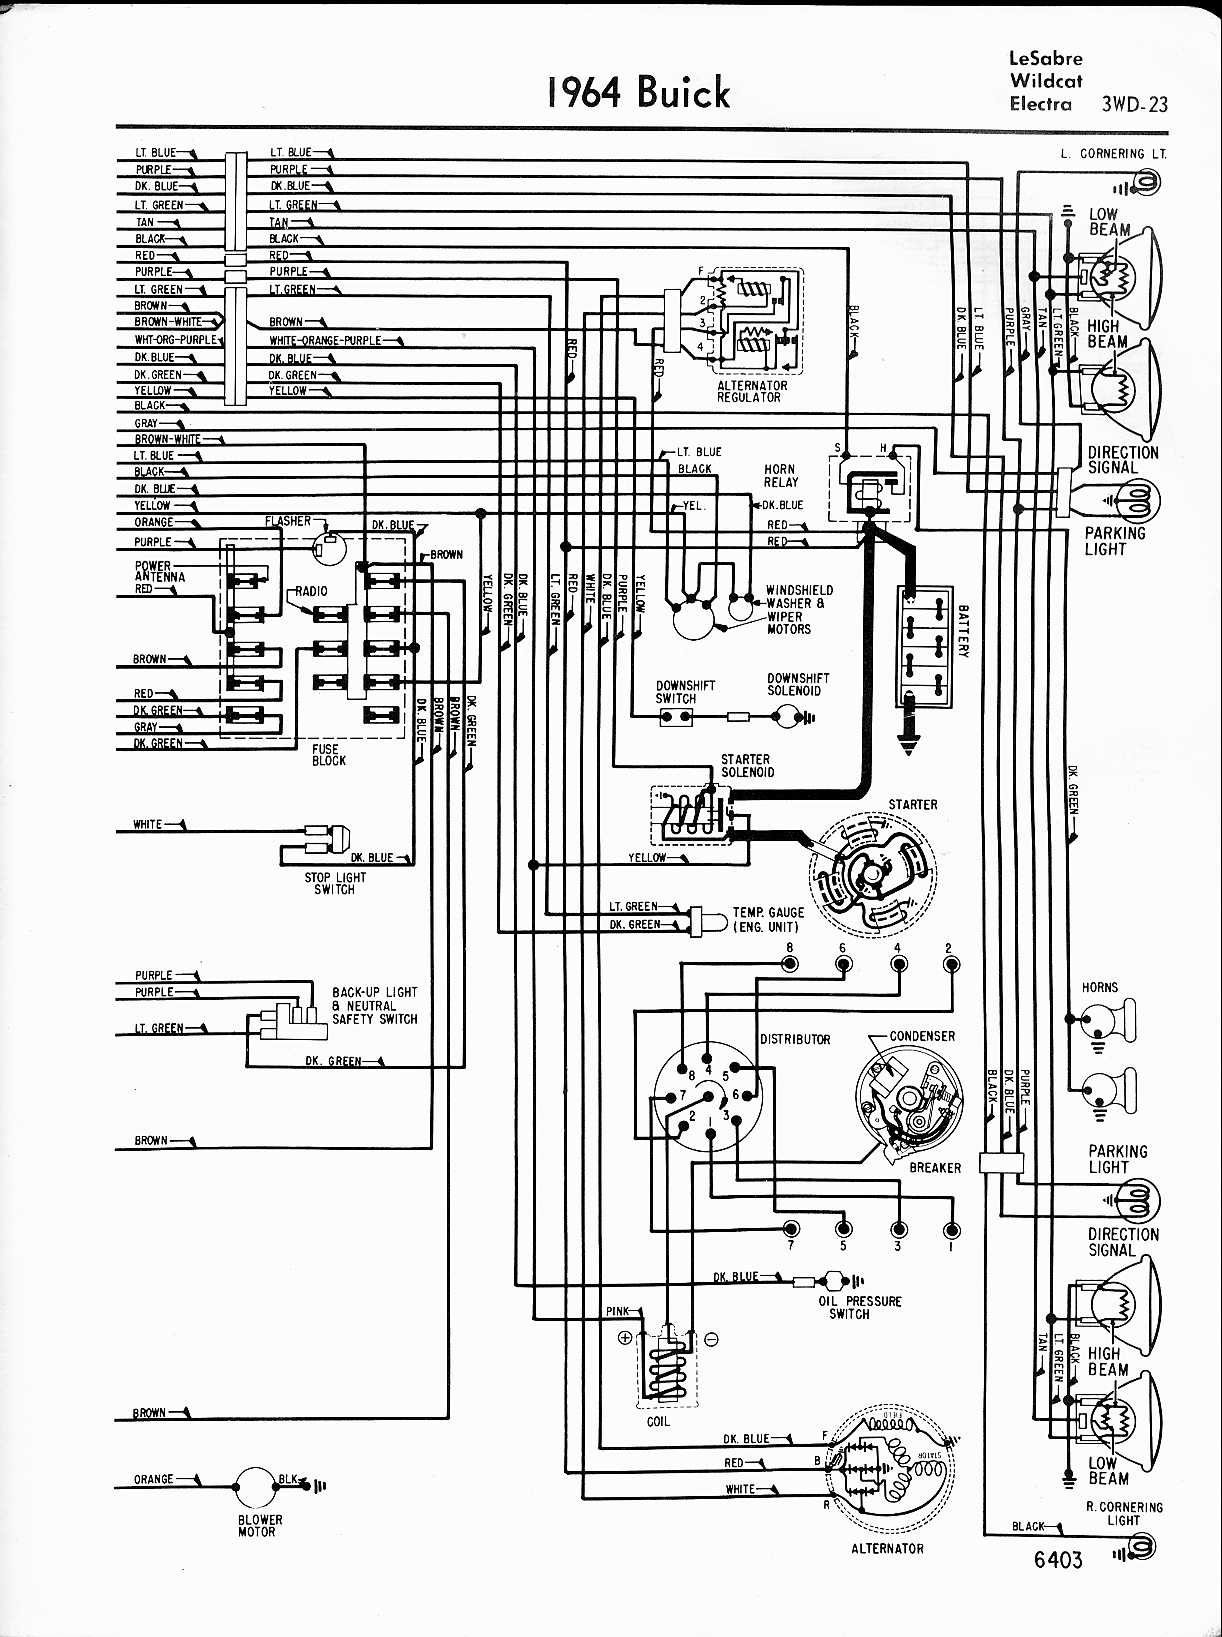 mercruiser wiring diagram instrument panel best wiring library Boat Stereo Wiring Diagram buick regal wiring harness wiring diagram data mercury sable wiring harness 2004 buick regal wiring harness